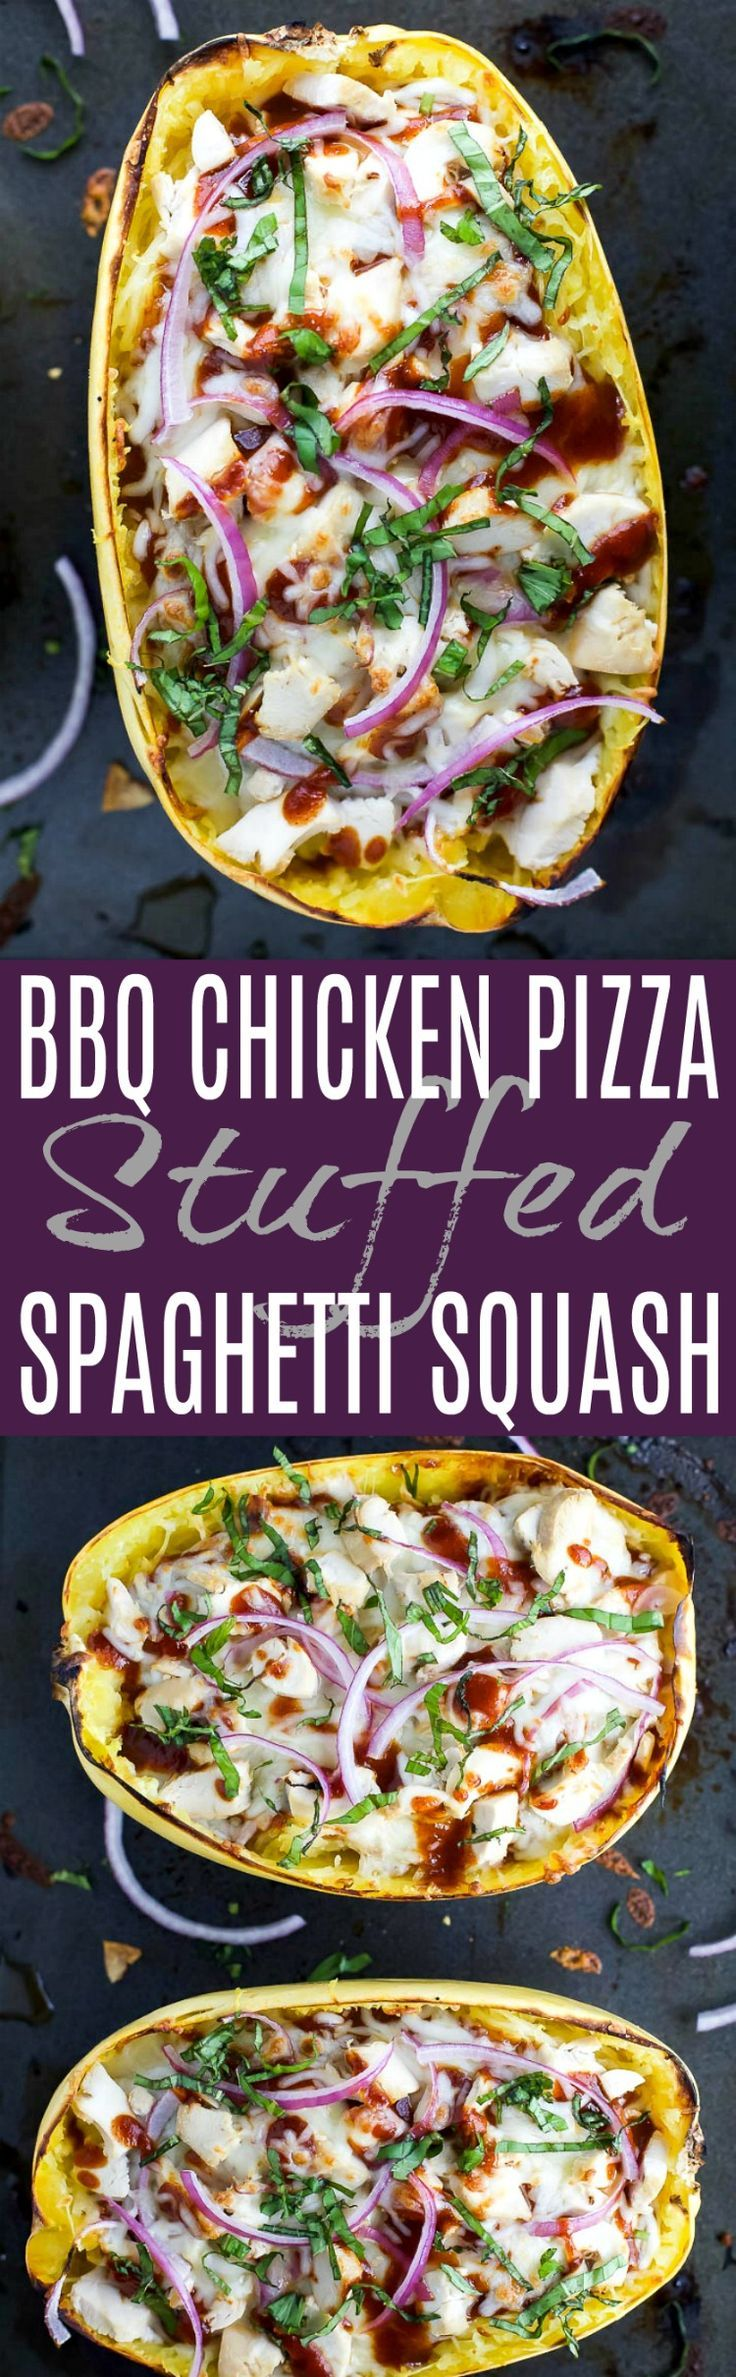 Easy Low Carb BBQ Chicken Pizza Stuffed Spaghetti Squash - filled with sweet tangy BBQ sauce, 22 grams of protein and gooey cheese. All your favorite things about BBQ Chicken Pizza for under 300 calories! #glutenfree